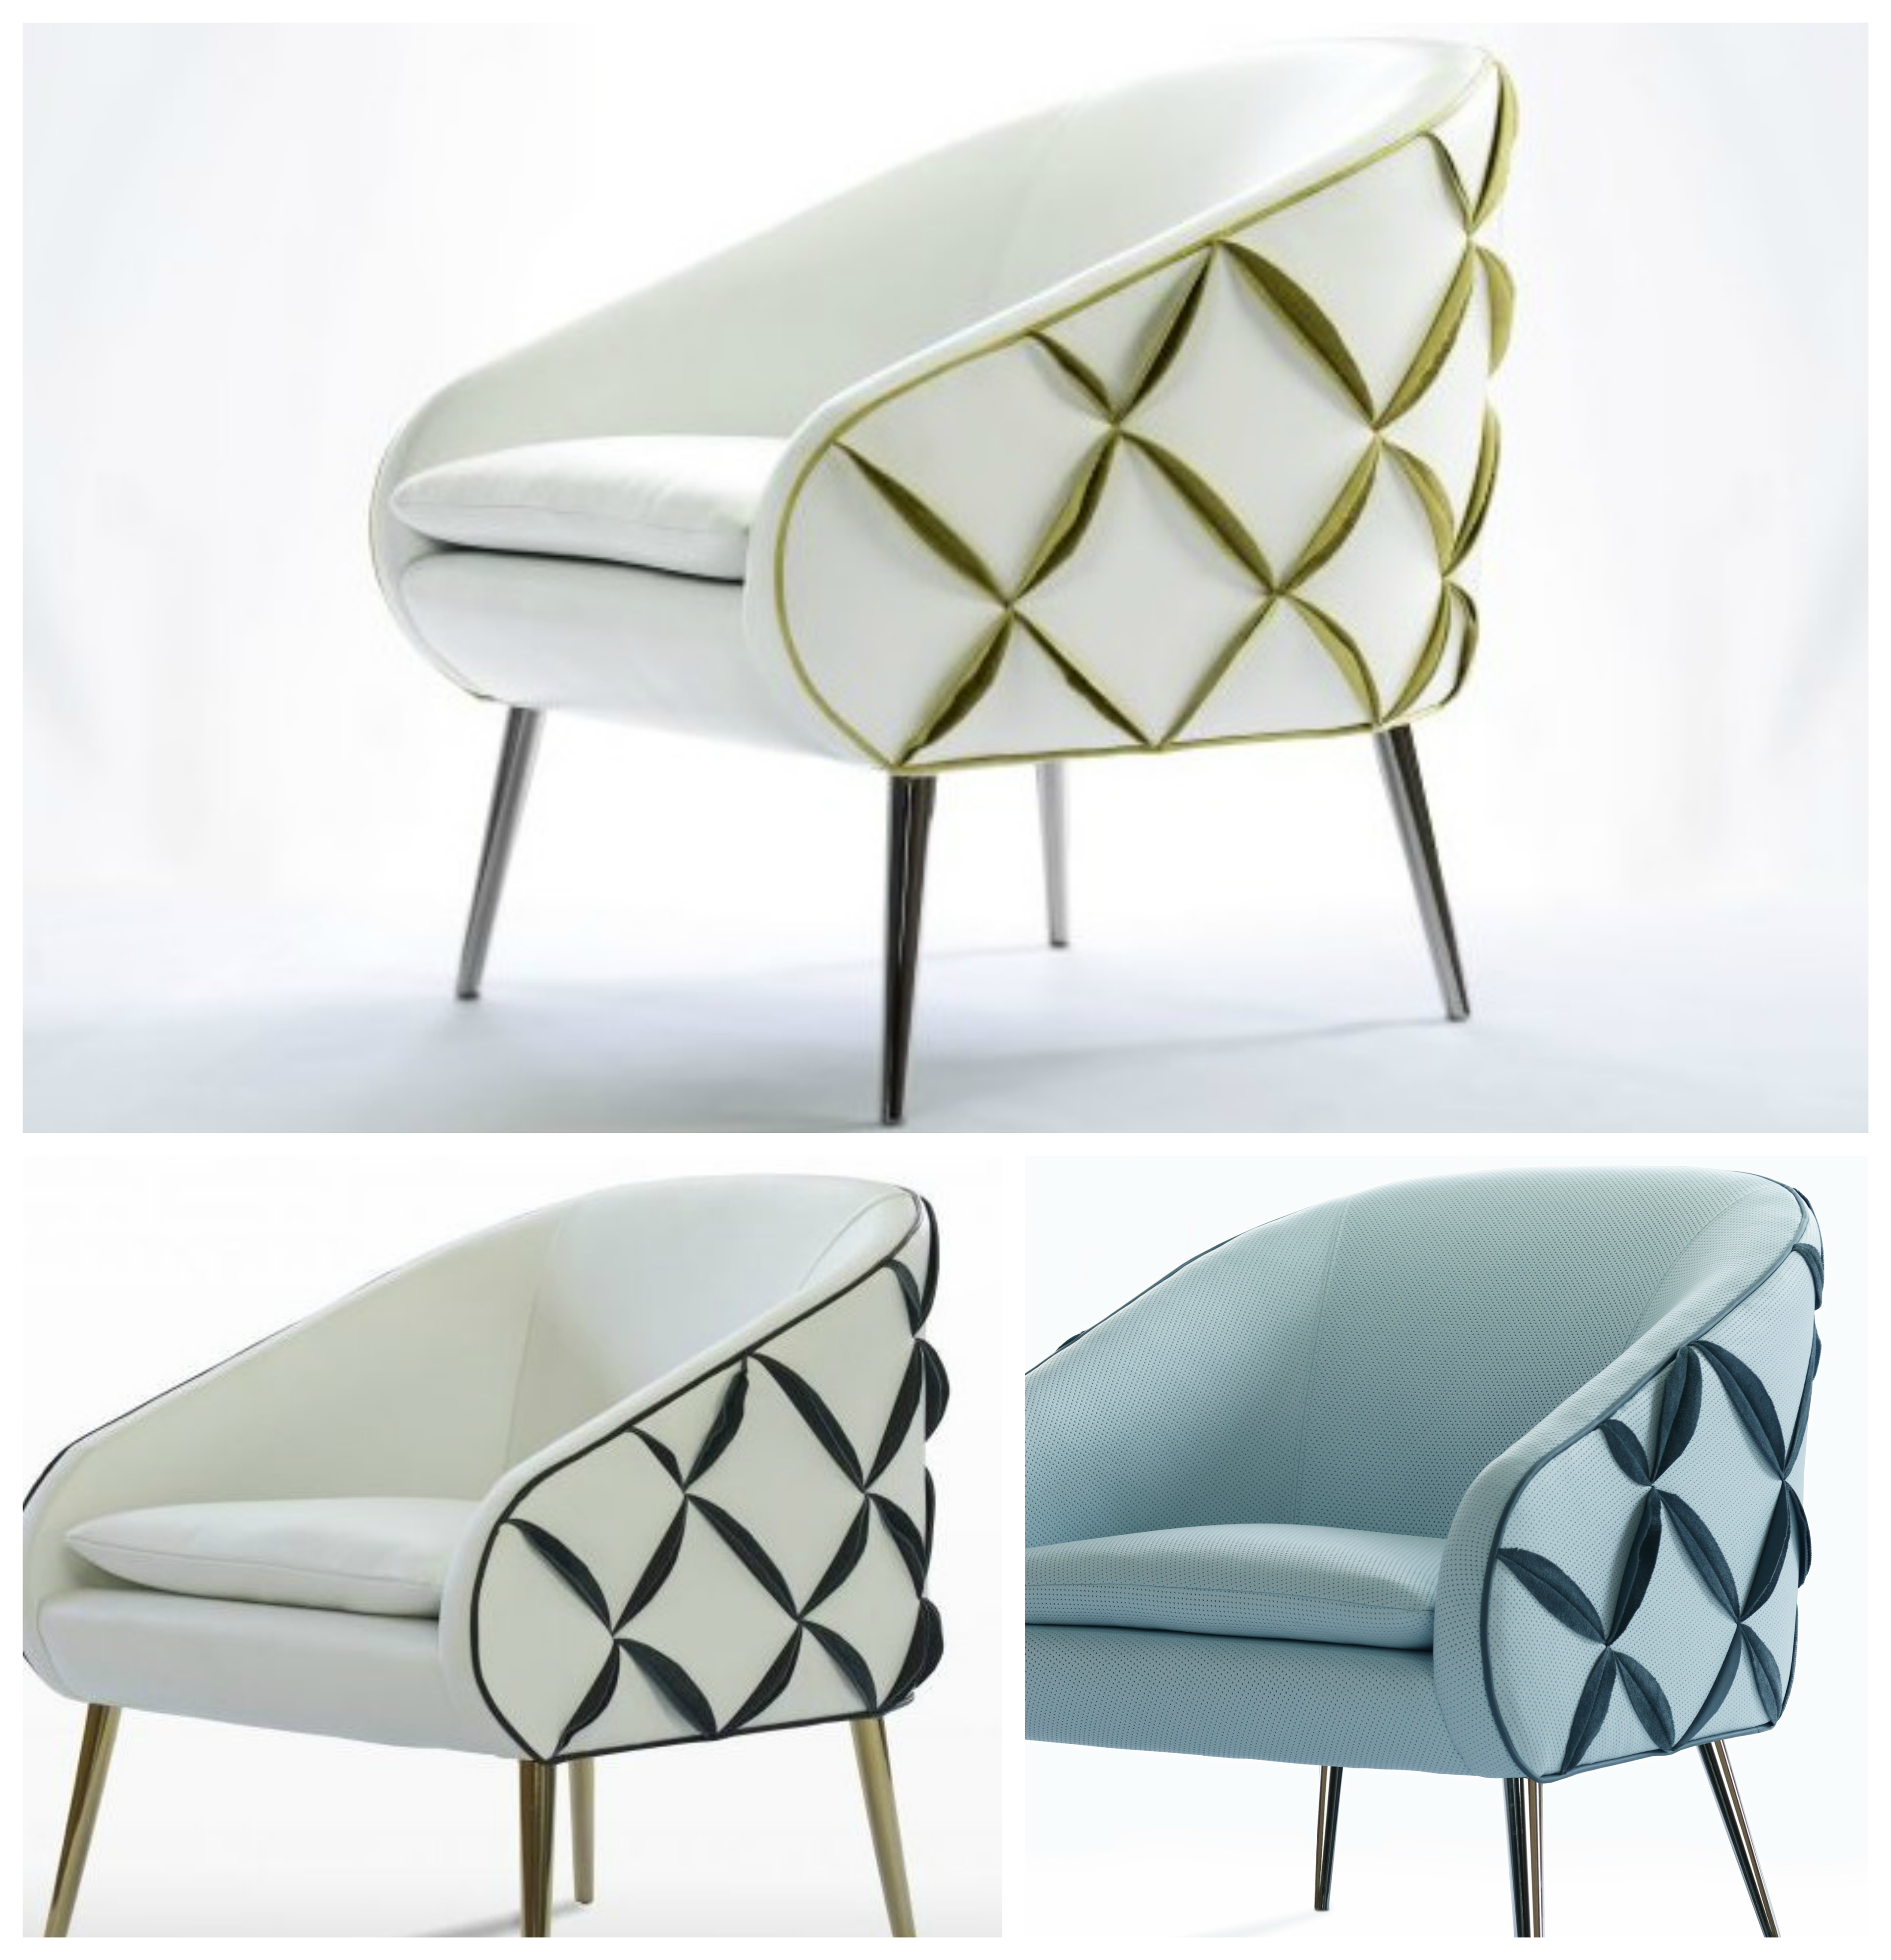 Distinctive design is all about personal choices. Check out our award winning Dali chair. Which color combo best suits you? #NAfurniture #interiordesign